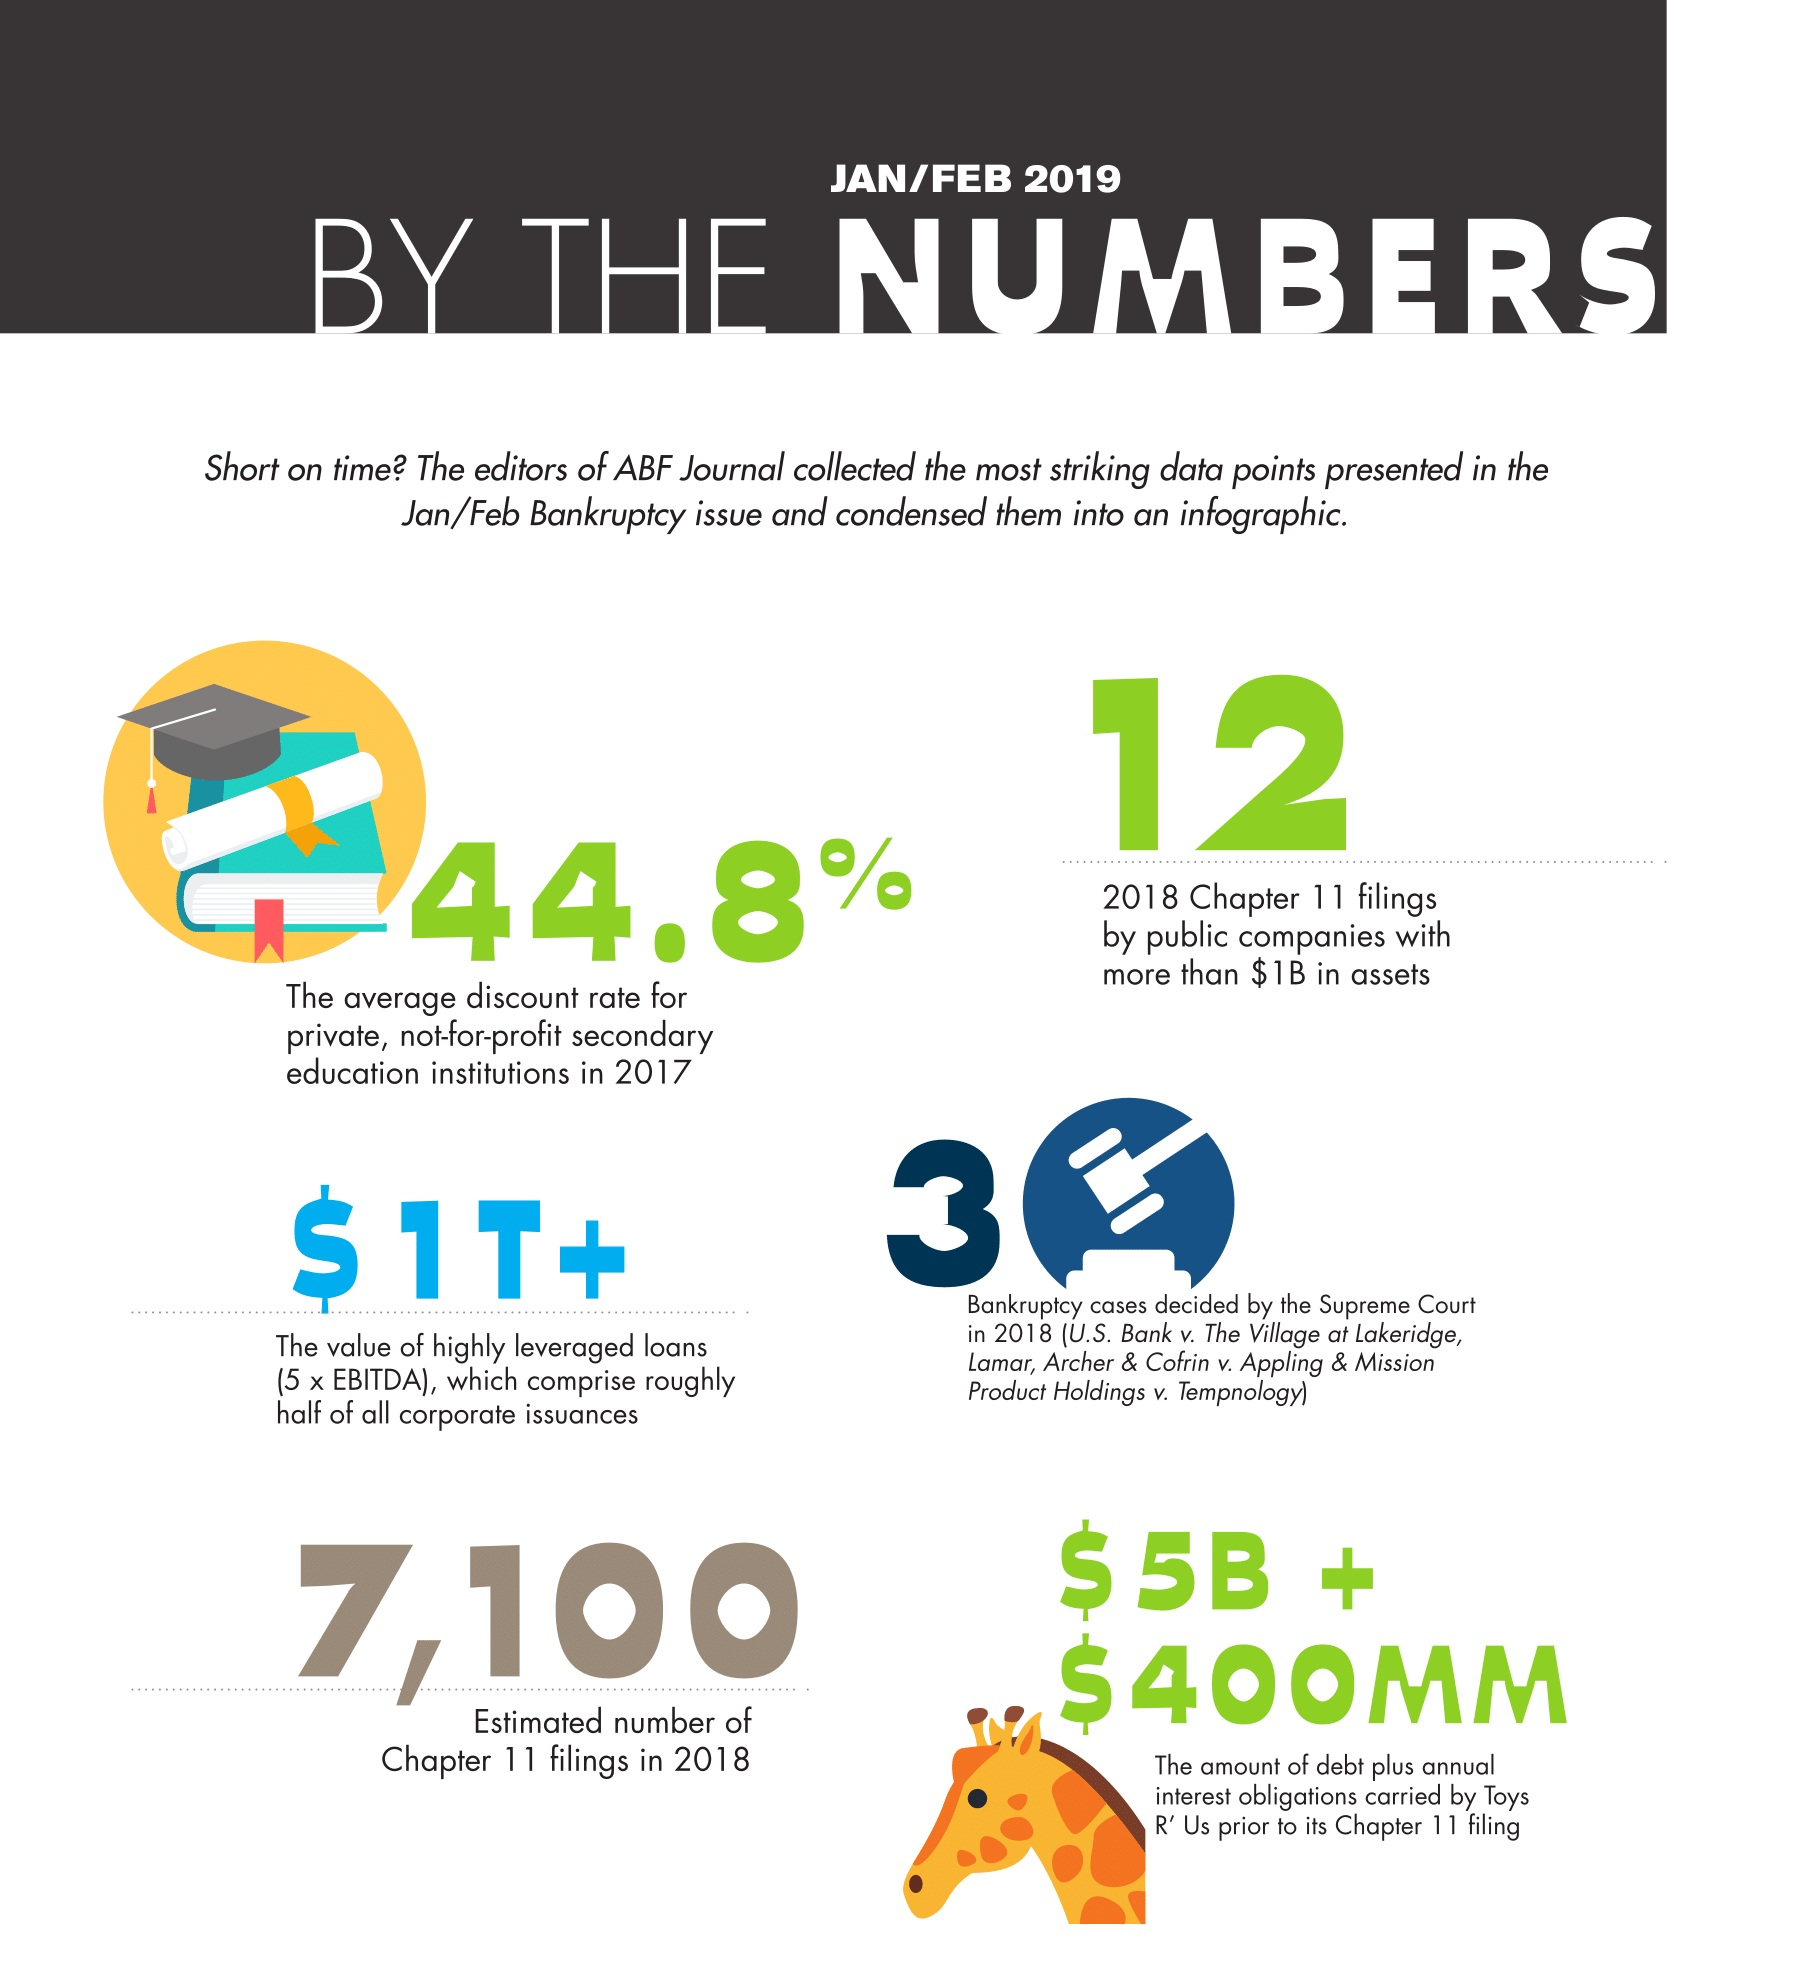 Short on time? The editors of ABF Journal collected the most striking data points presented in the Jan/Feb Bankruptcy issue and condensed them into an infographic.